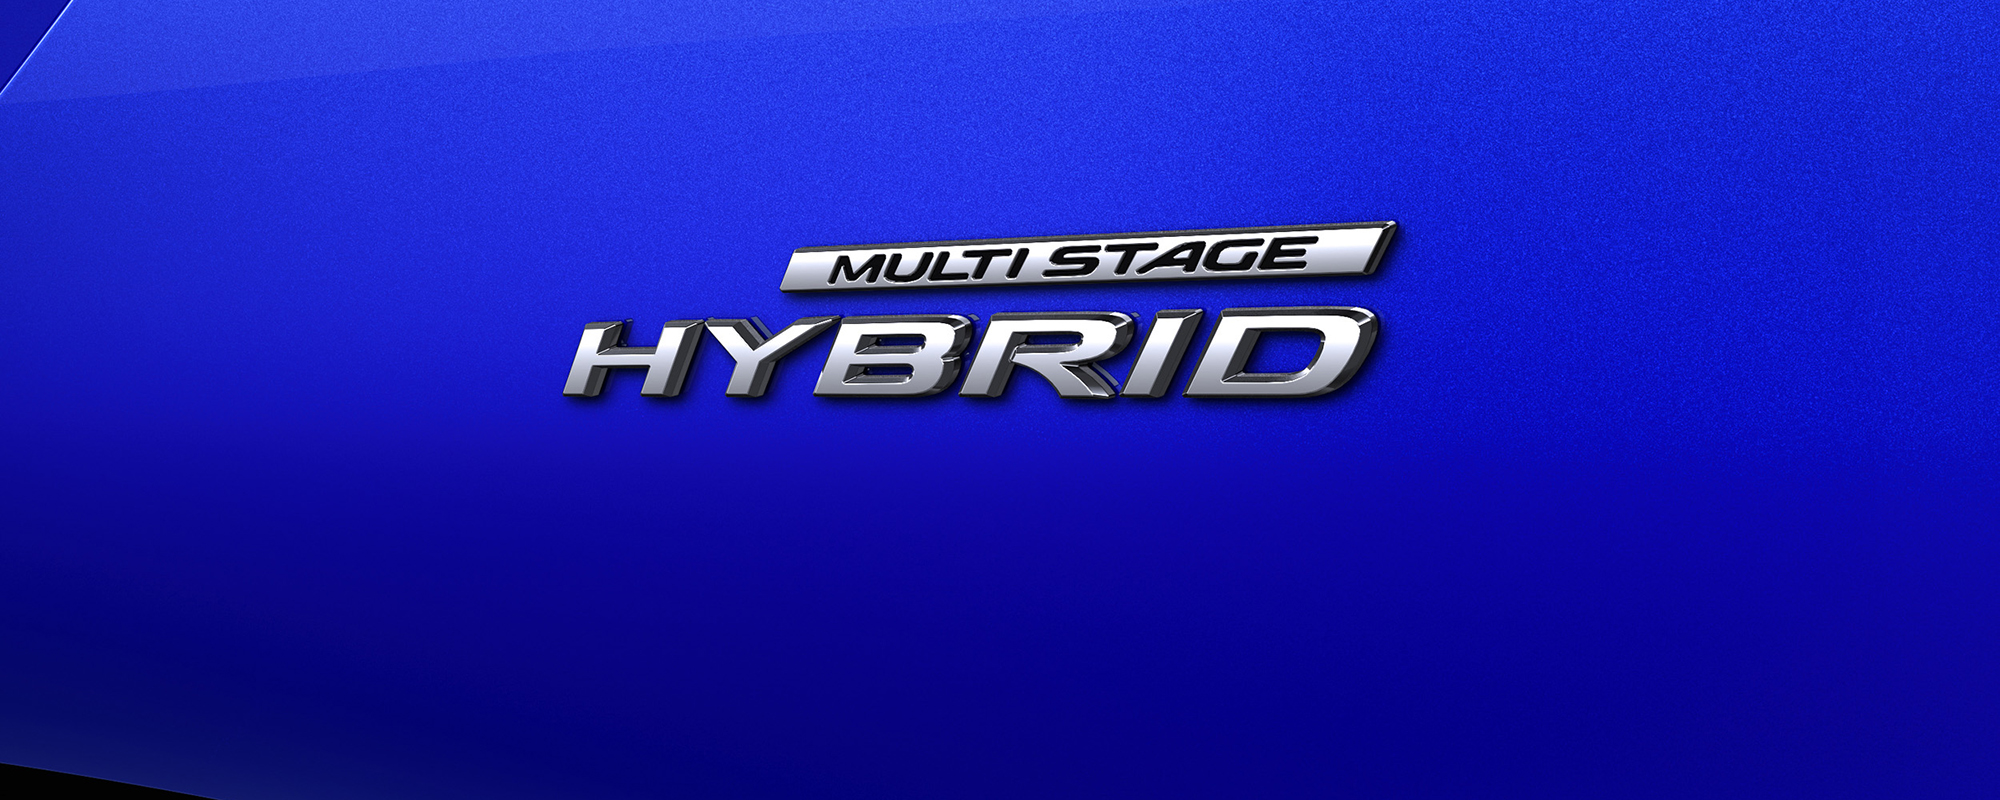 State-of-the-art transmissie: high performance Multi Stage Hybrid voor Lexus LC 500[h]